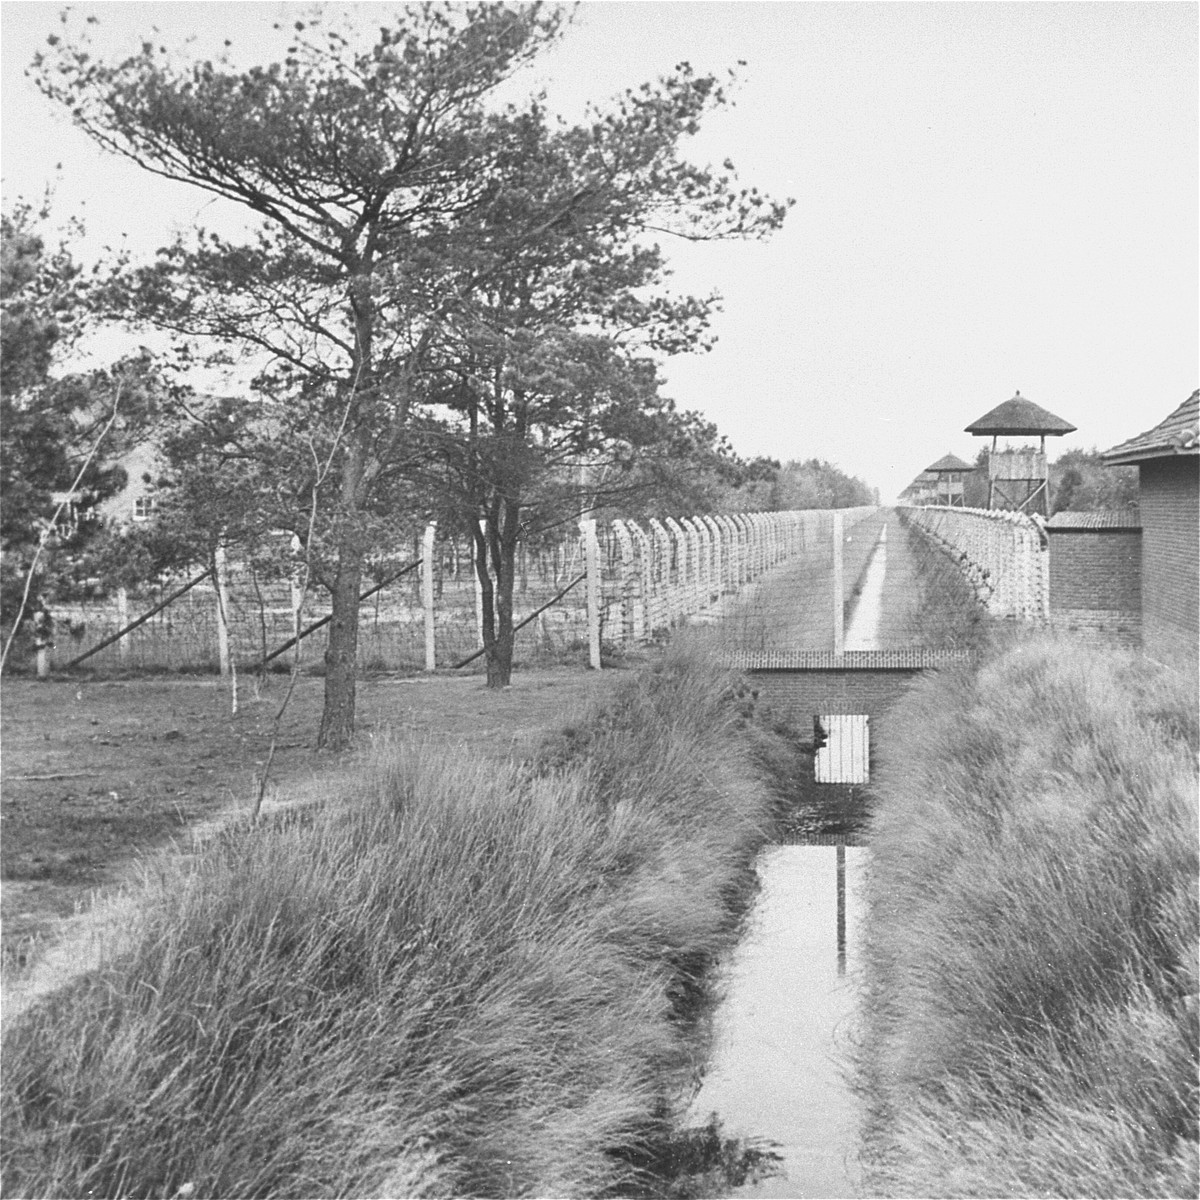 View of a section of the barbed-wire fence, moat and line of guard towers that surround the Vught transit camp.